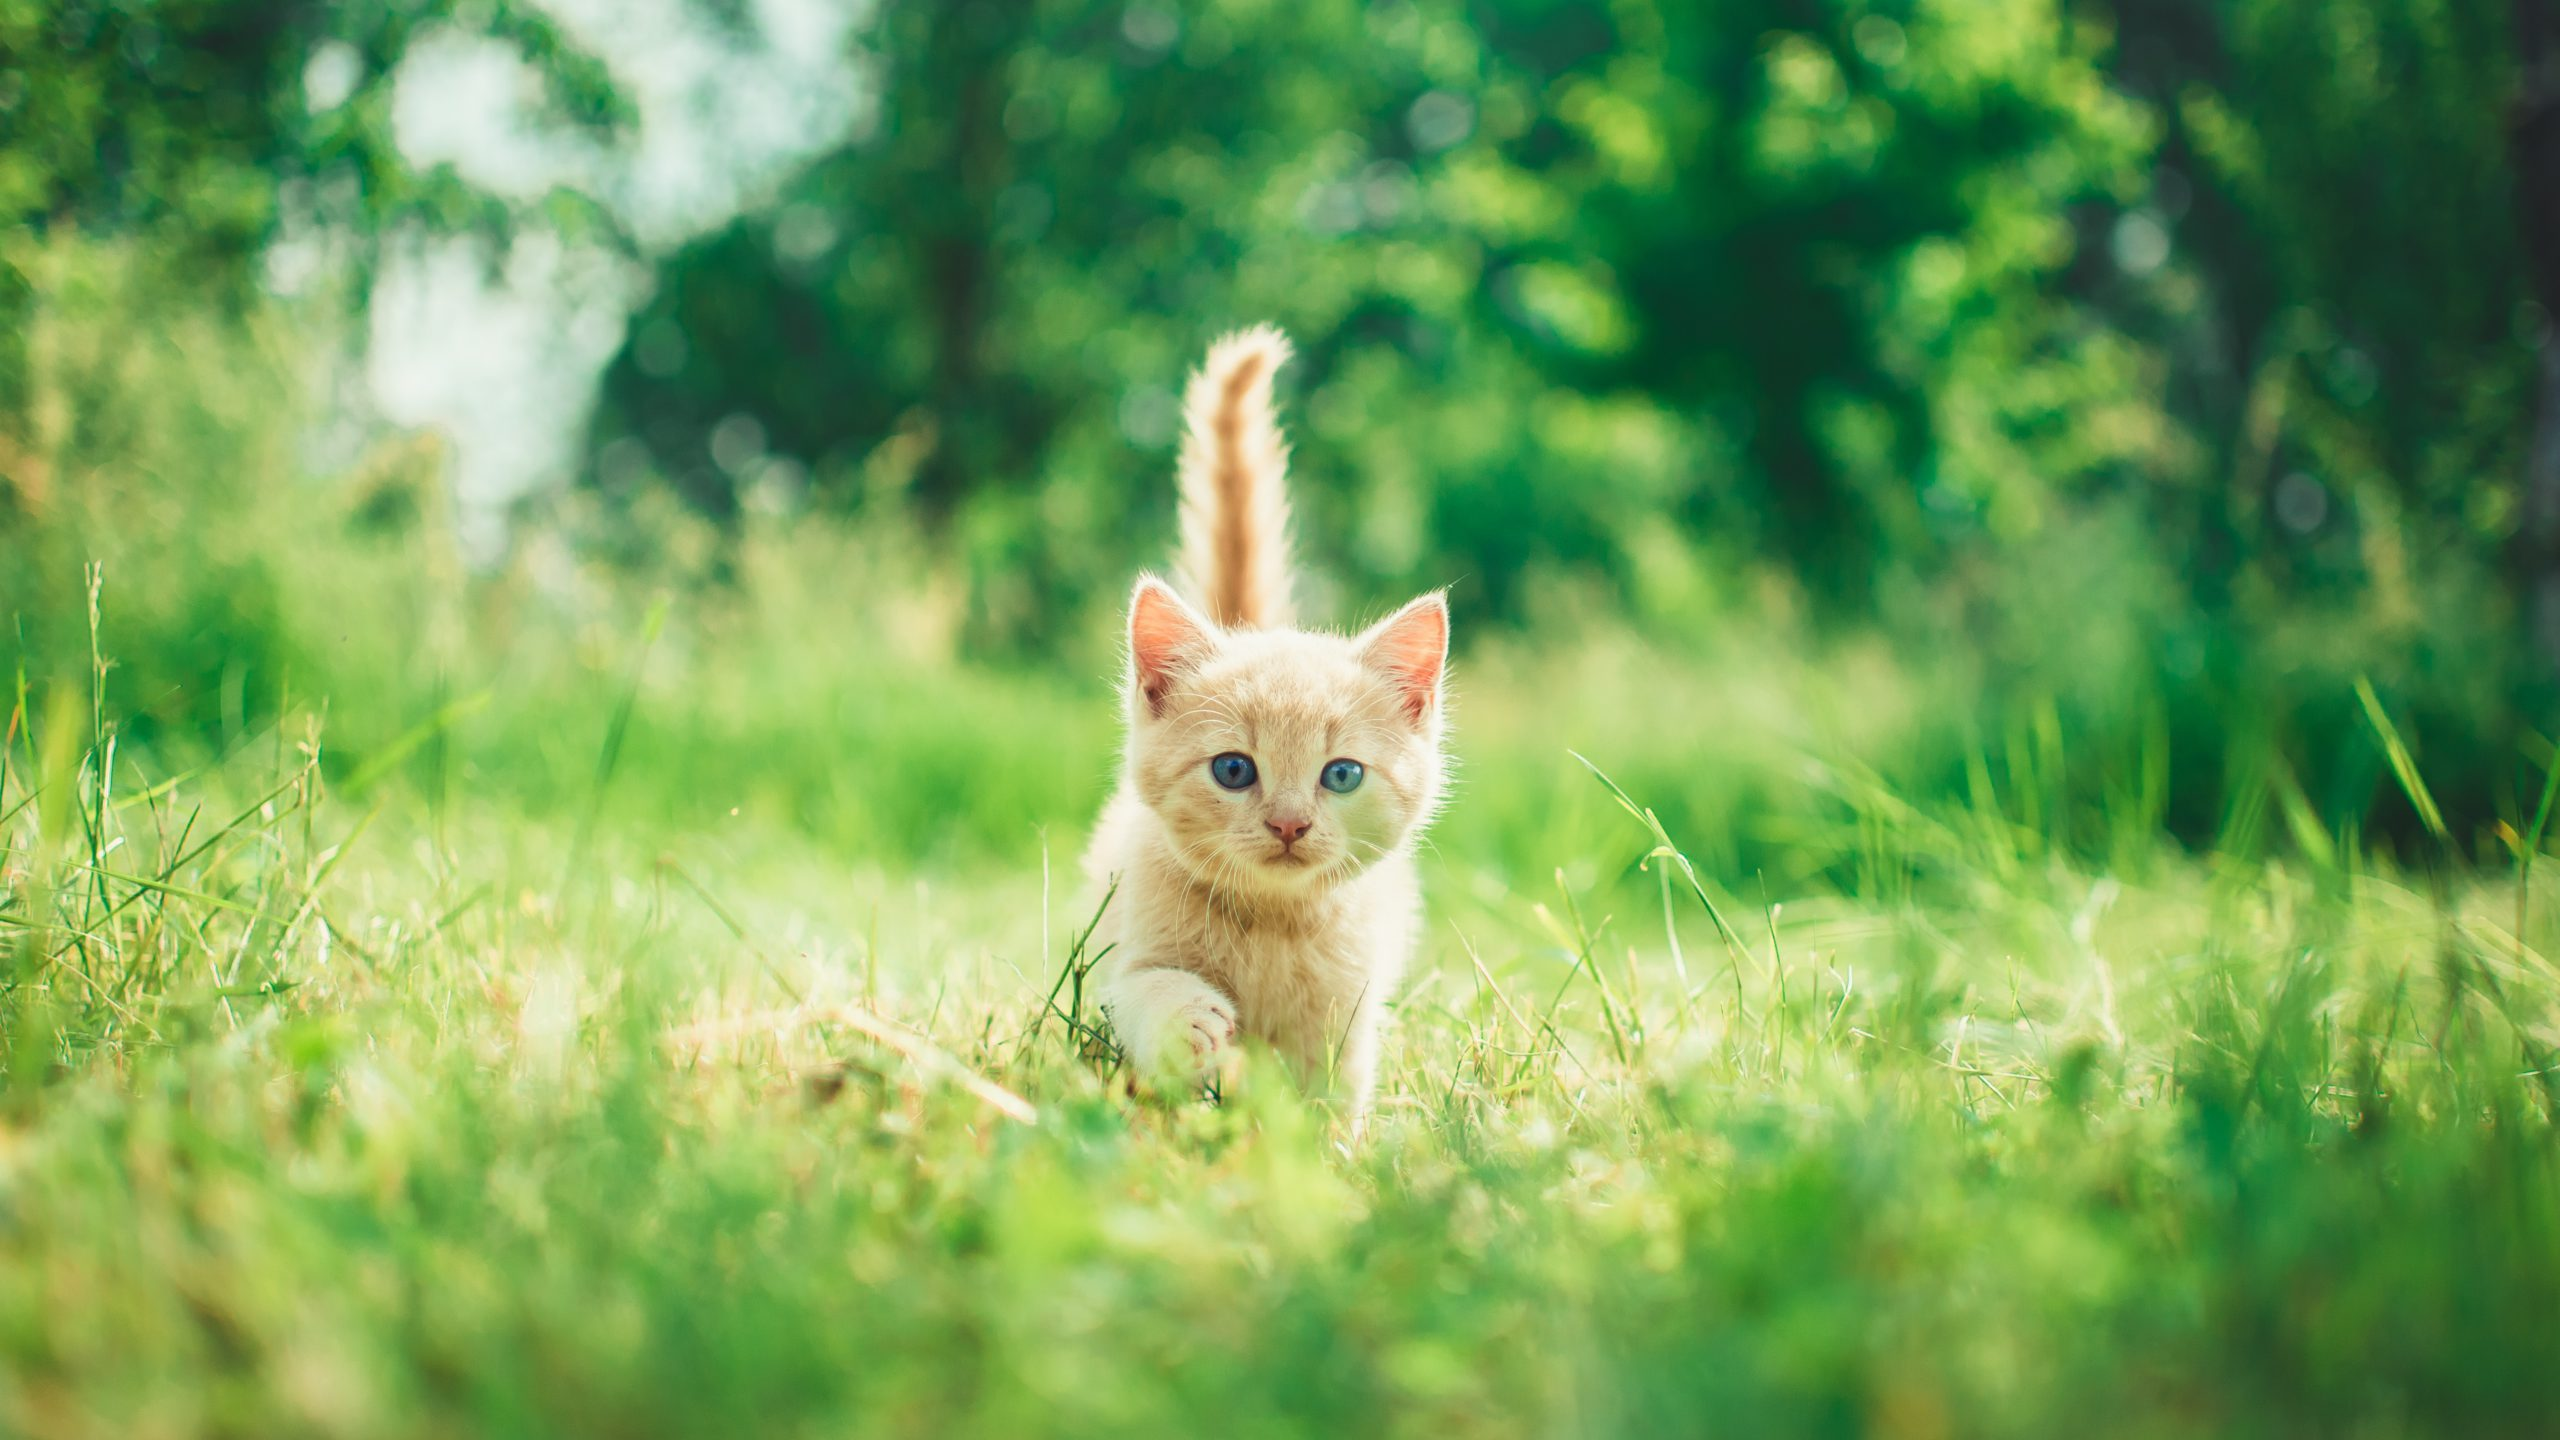 Study Finds Cats Can Benefit Kids with Autism